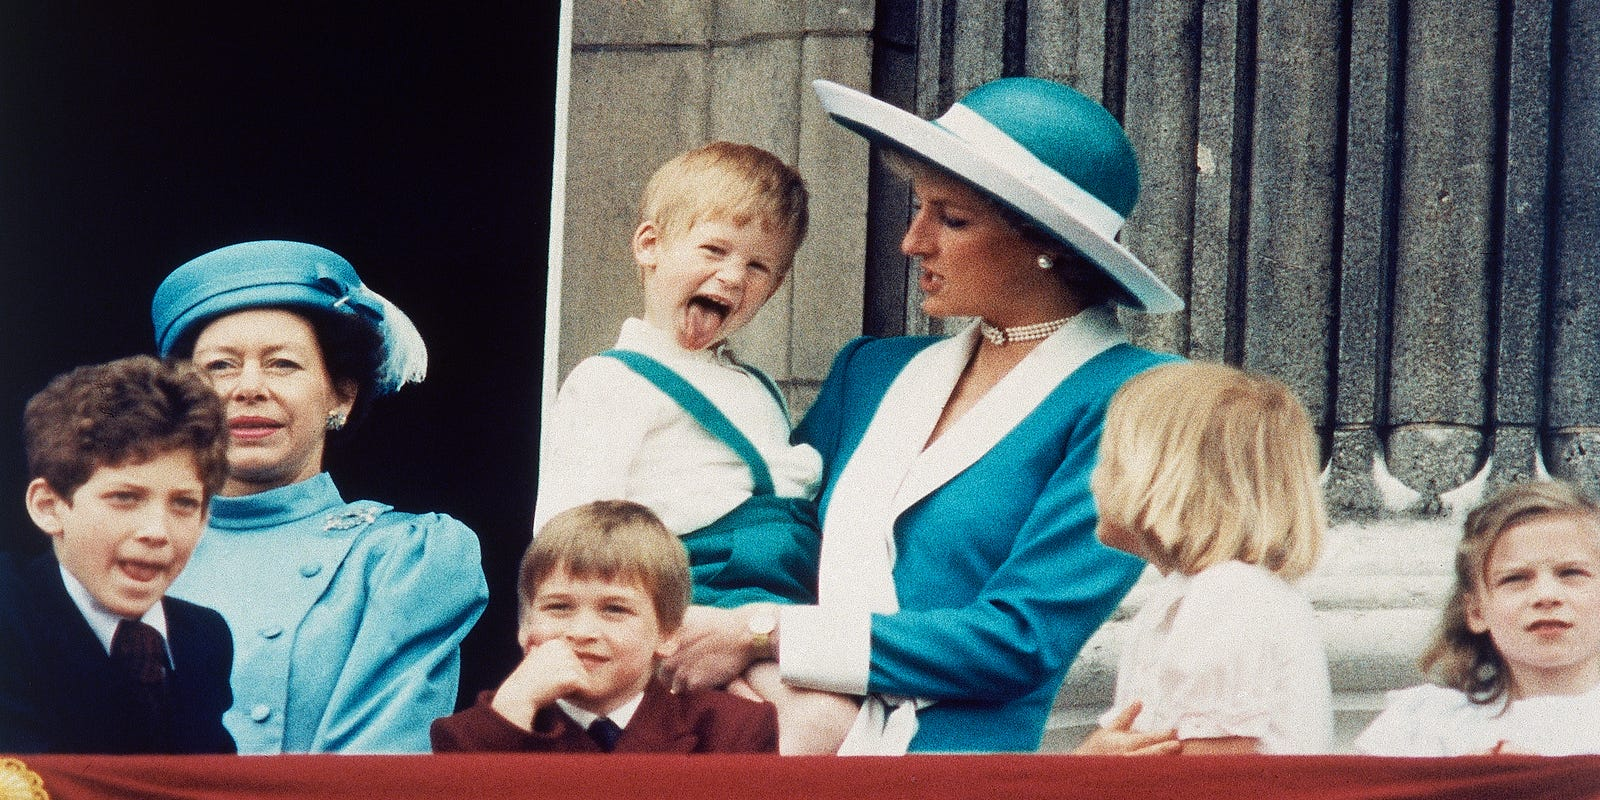 Meghan and Harry honor Princess Diana at the royal wedding